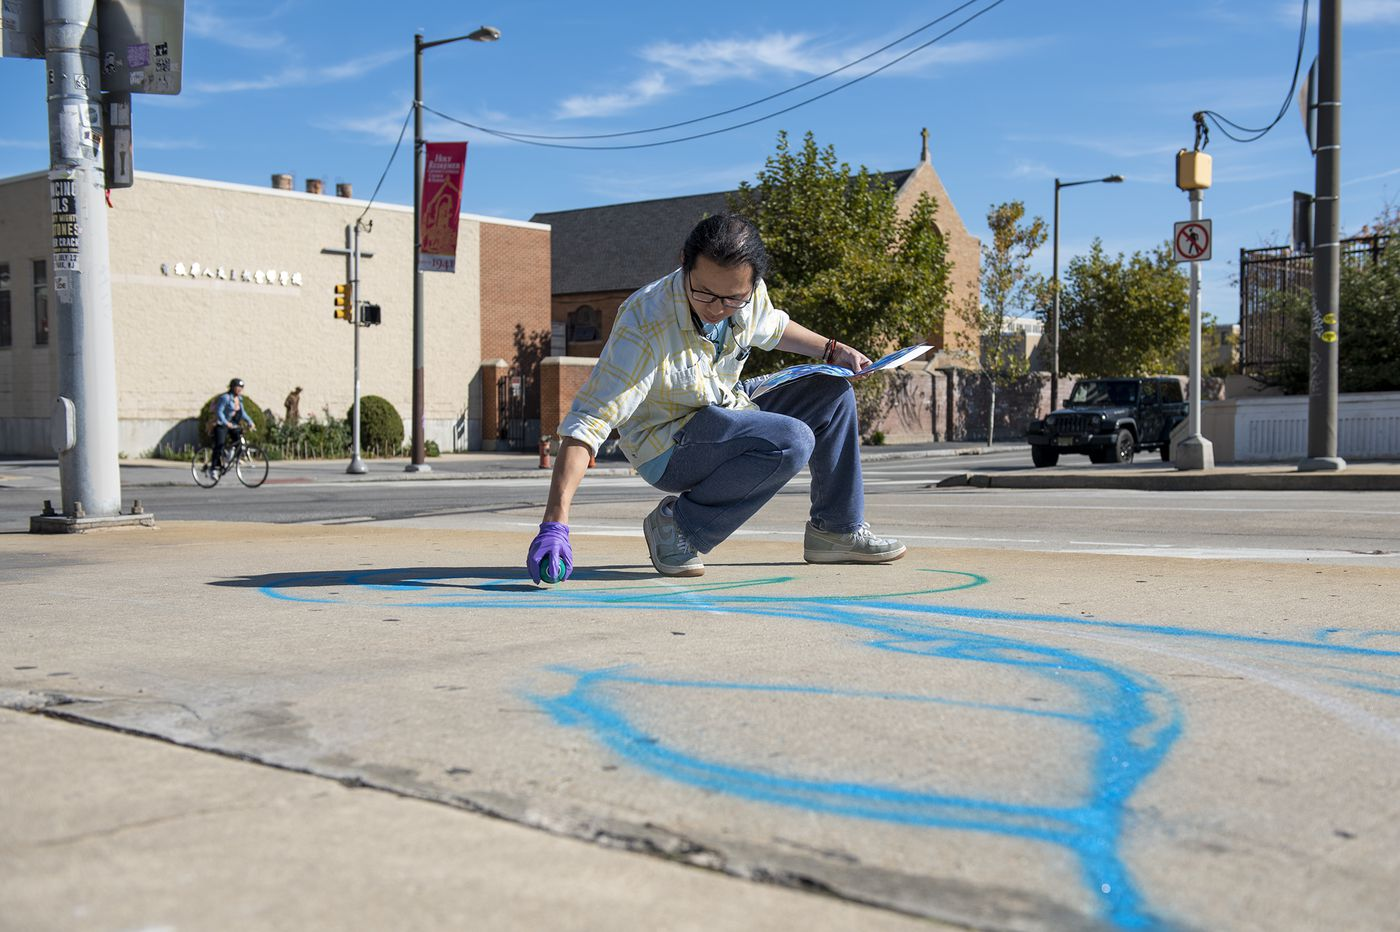 This Chinese artist just started his dream project of painting a mural in Philadelphia's Chinatown